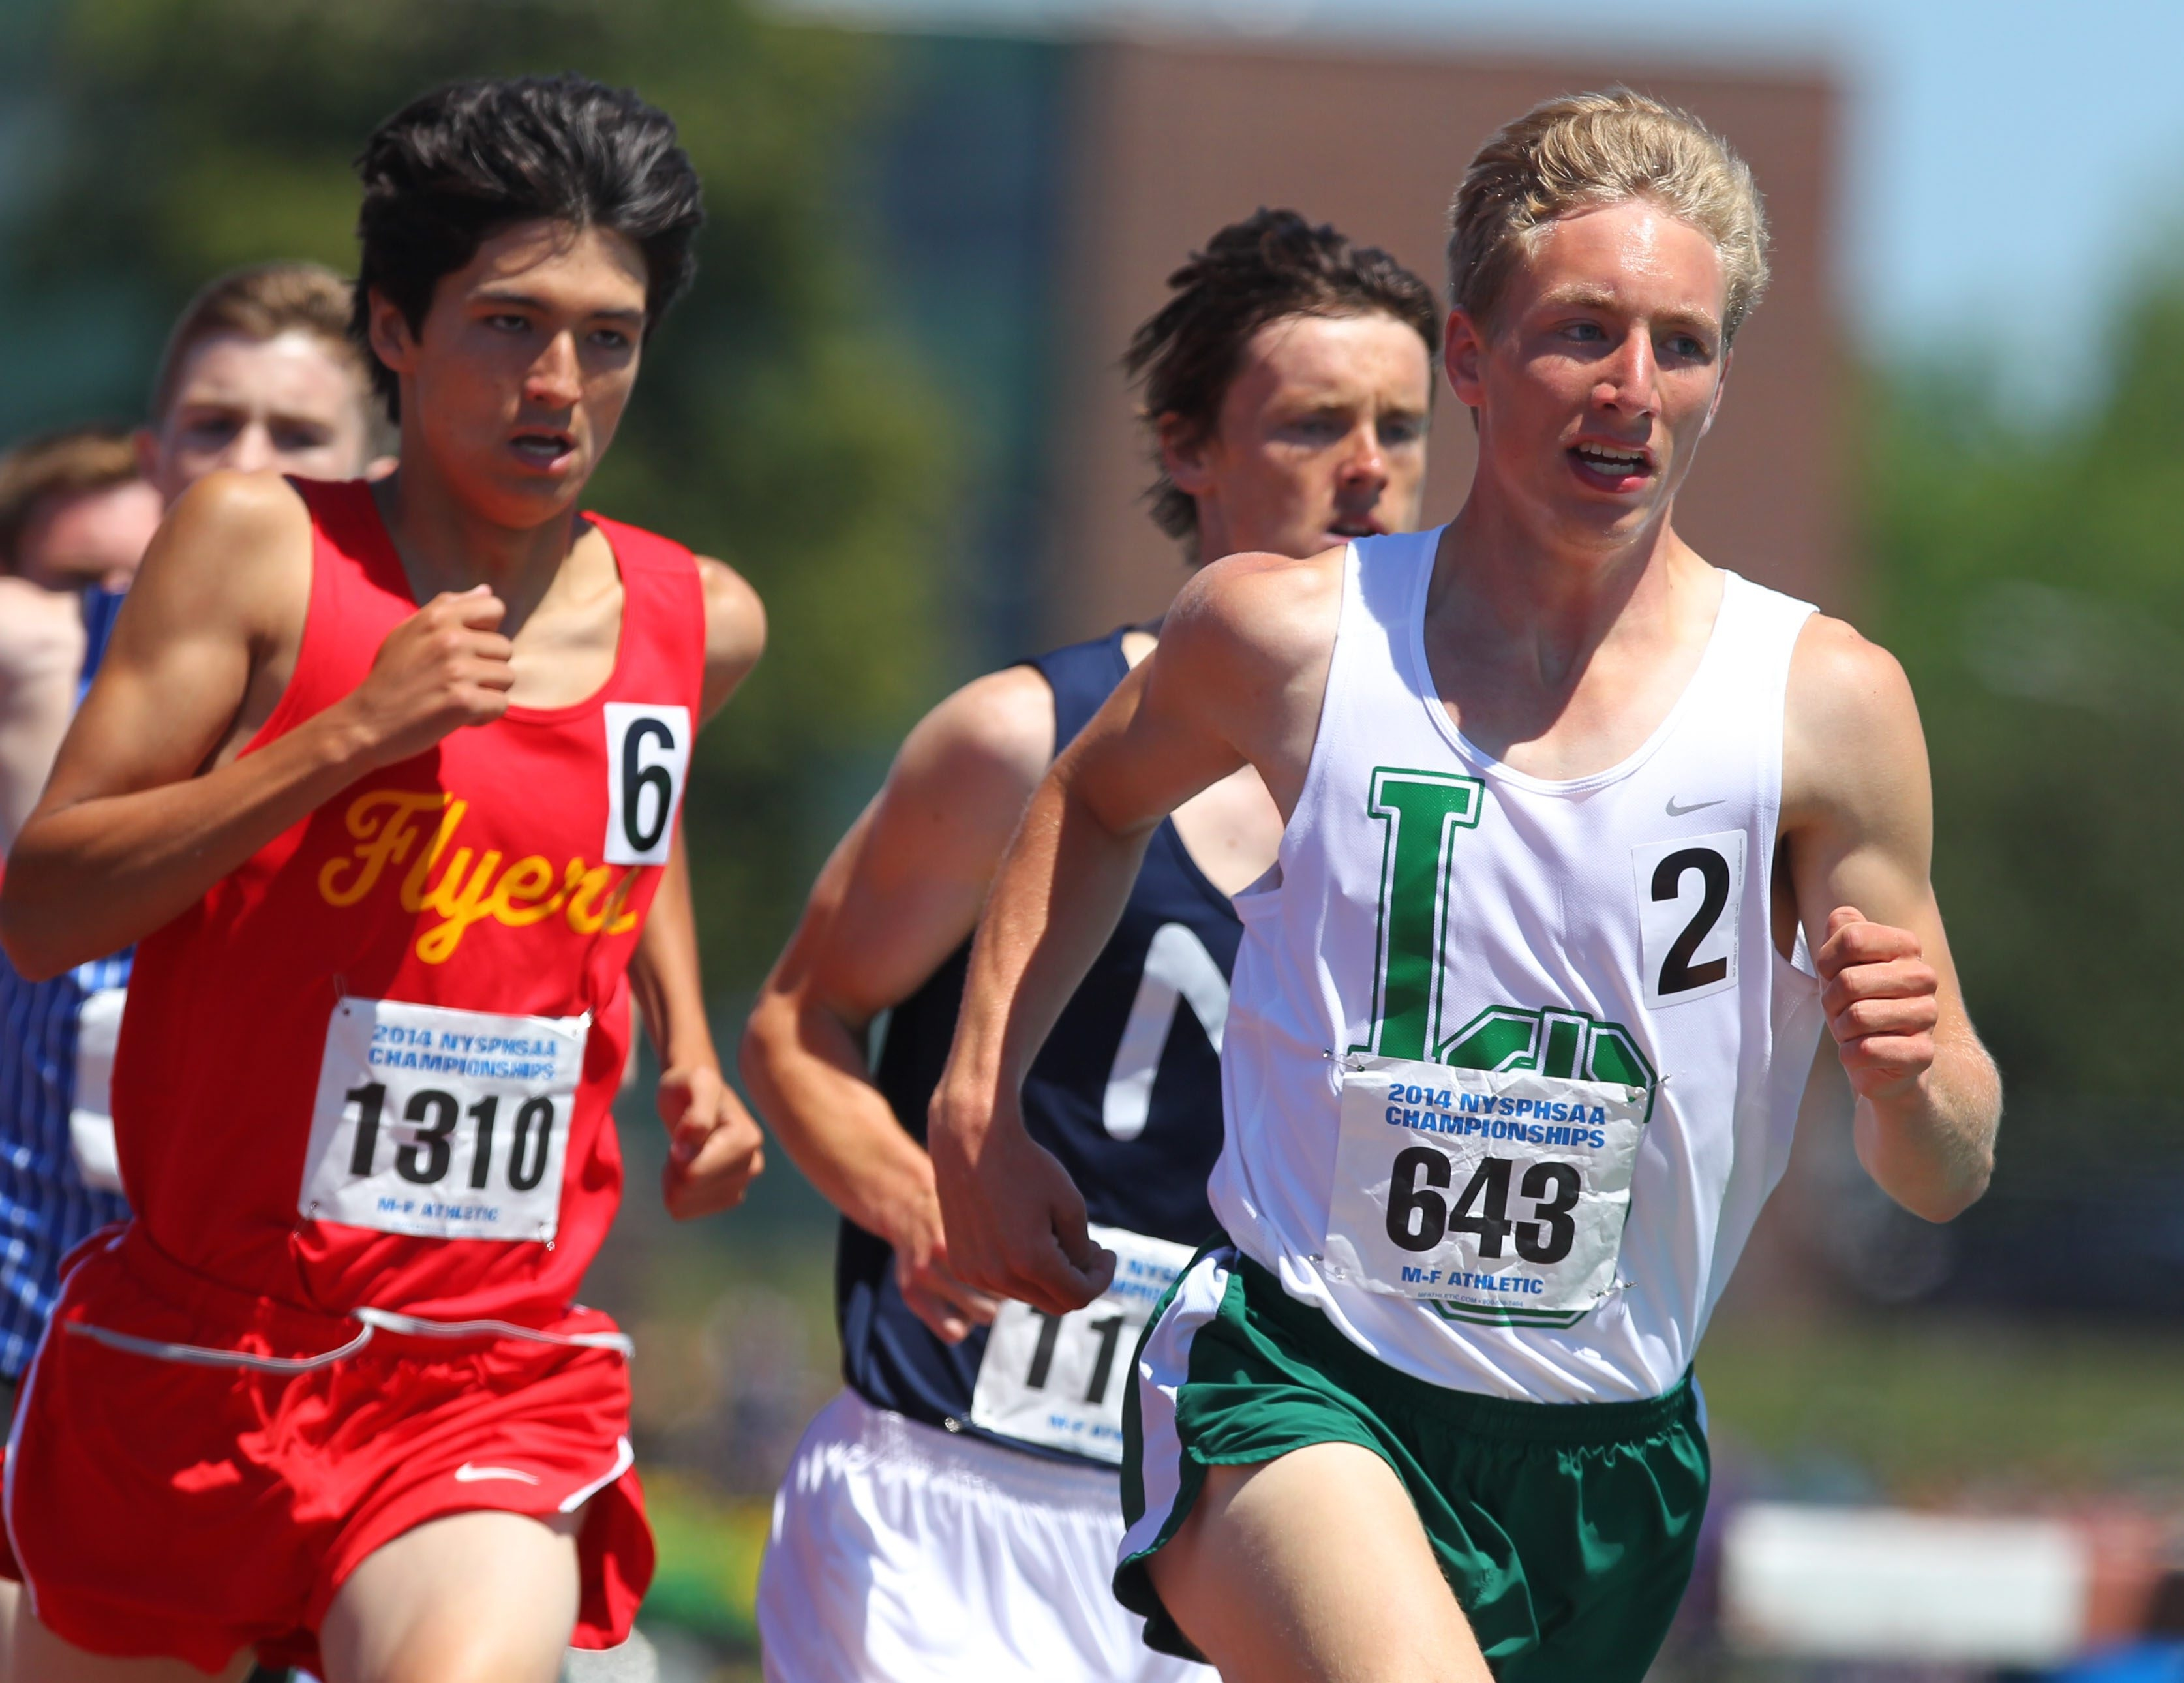 Lake Shore's T.J. Hornberger keeps the pace in the 1,600 meters at the State Track Championships. He finished third but broke his Section VI record of 4:12.77 by running it in 4:10.21.